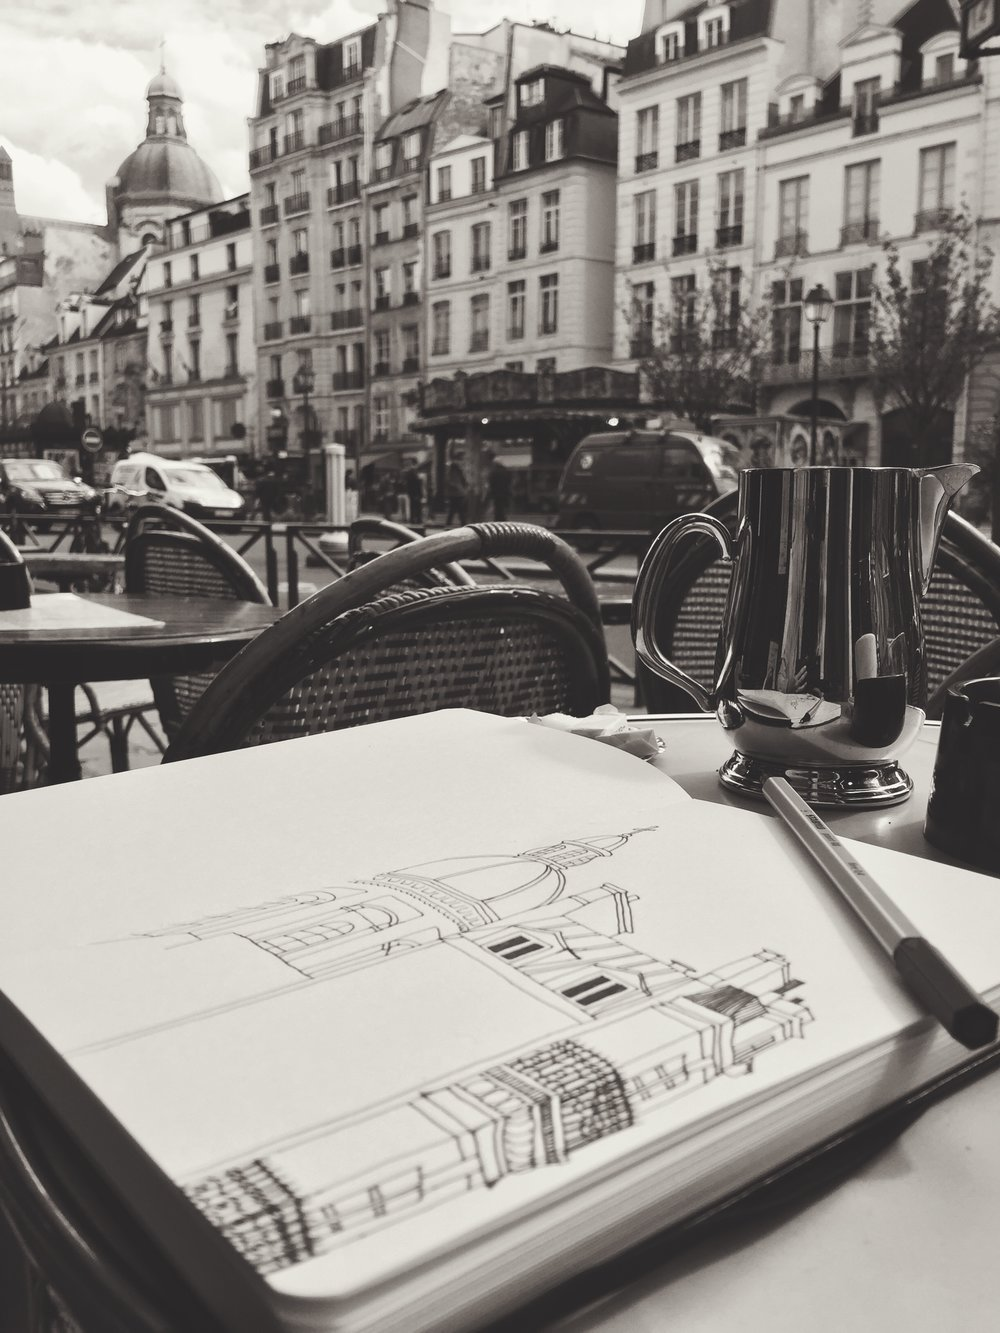 Sketching the skyline of Paris with an afternoon coffee